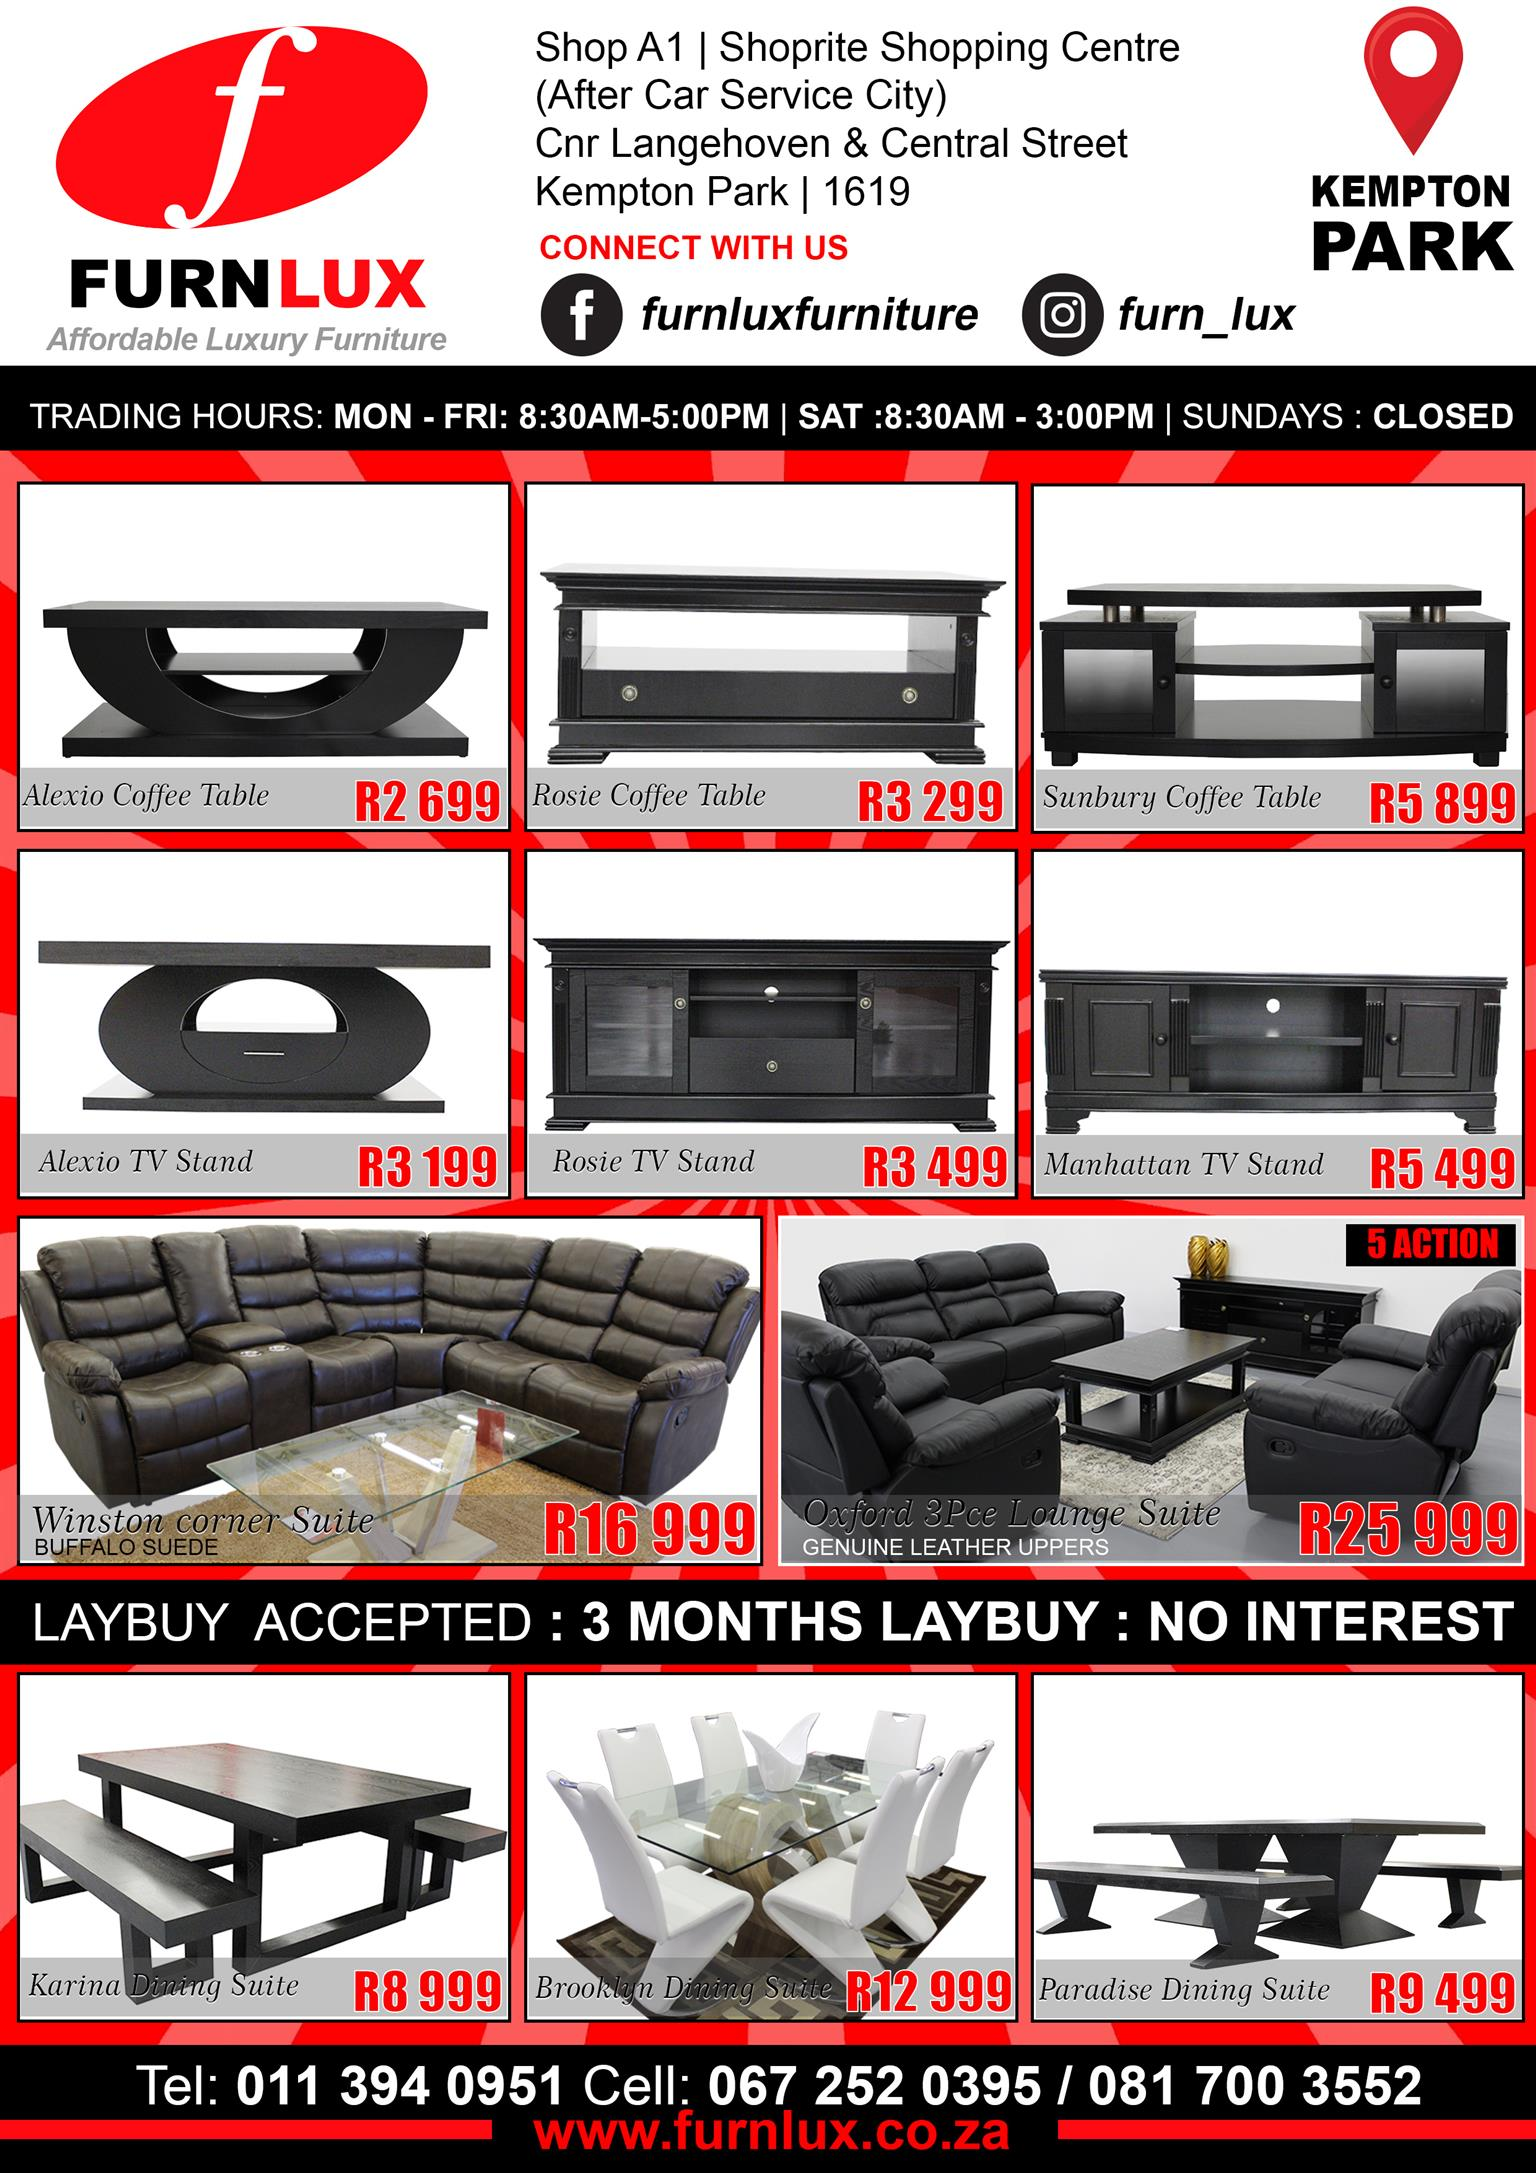 DINING SUITE PARADISE BRAND NEW!!!!! FOR ONLY R9 499